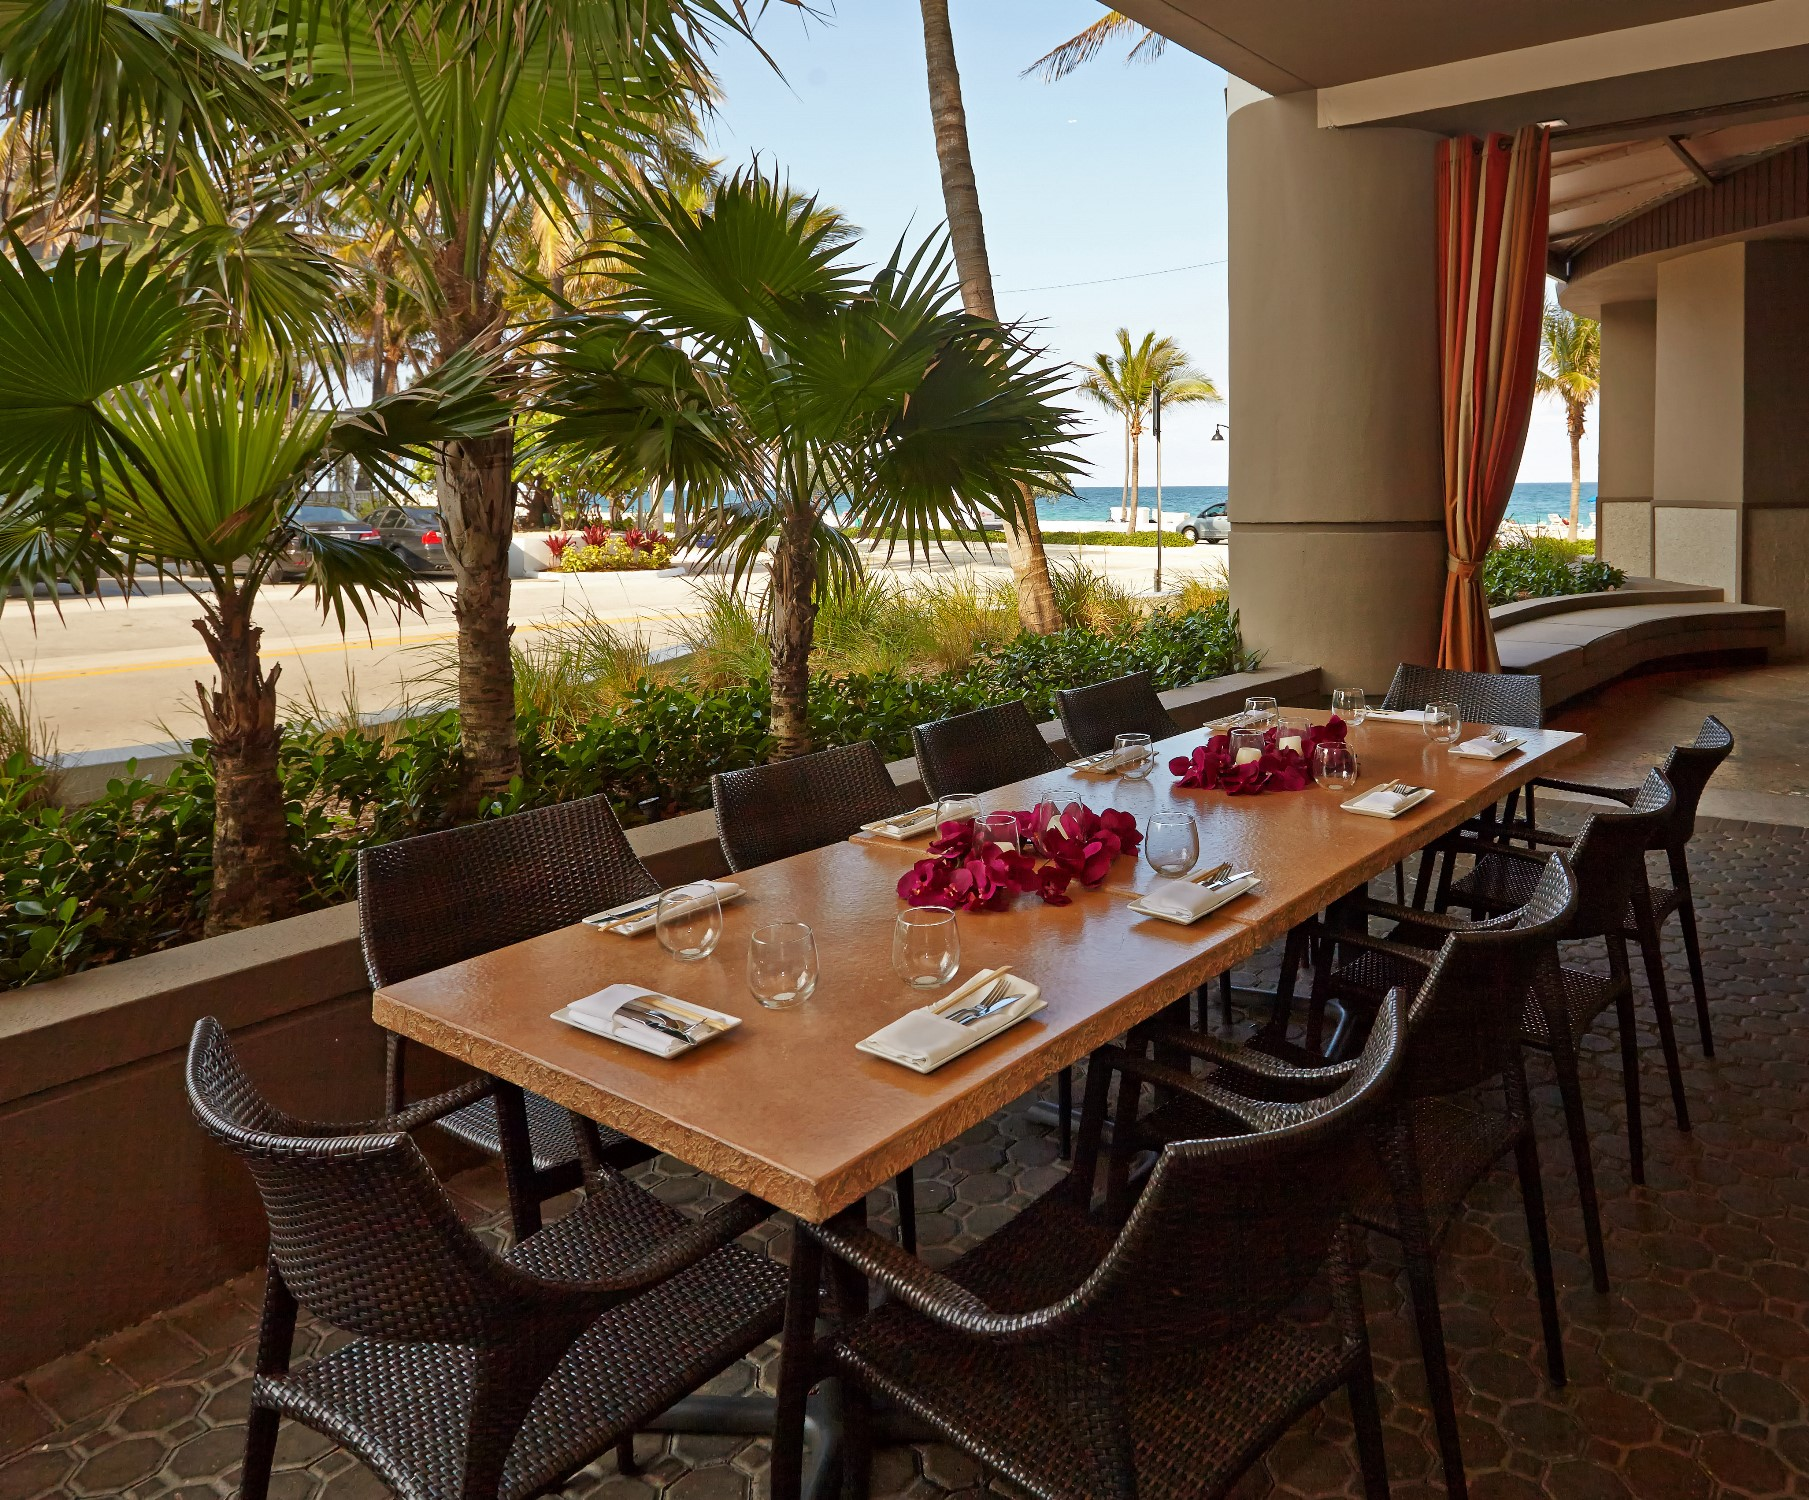 S3 Restaurant A New Wave Of Dining On Fort Lauderdale